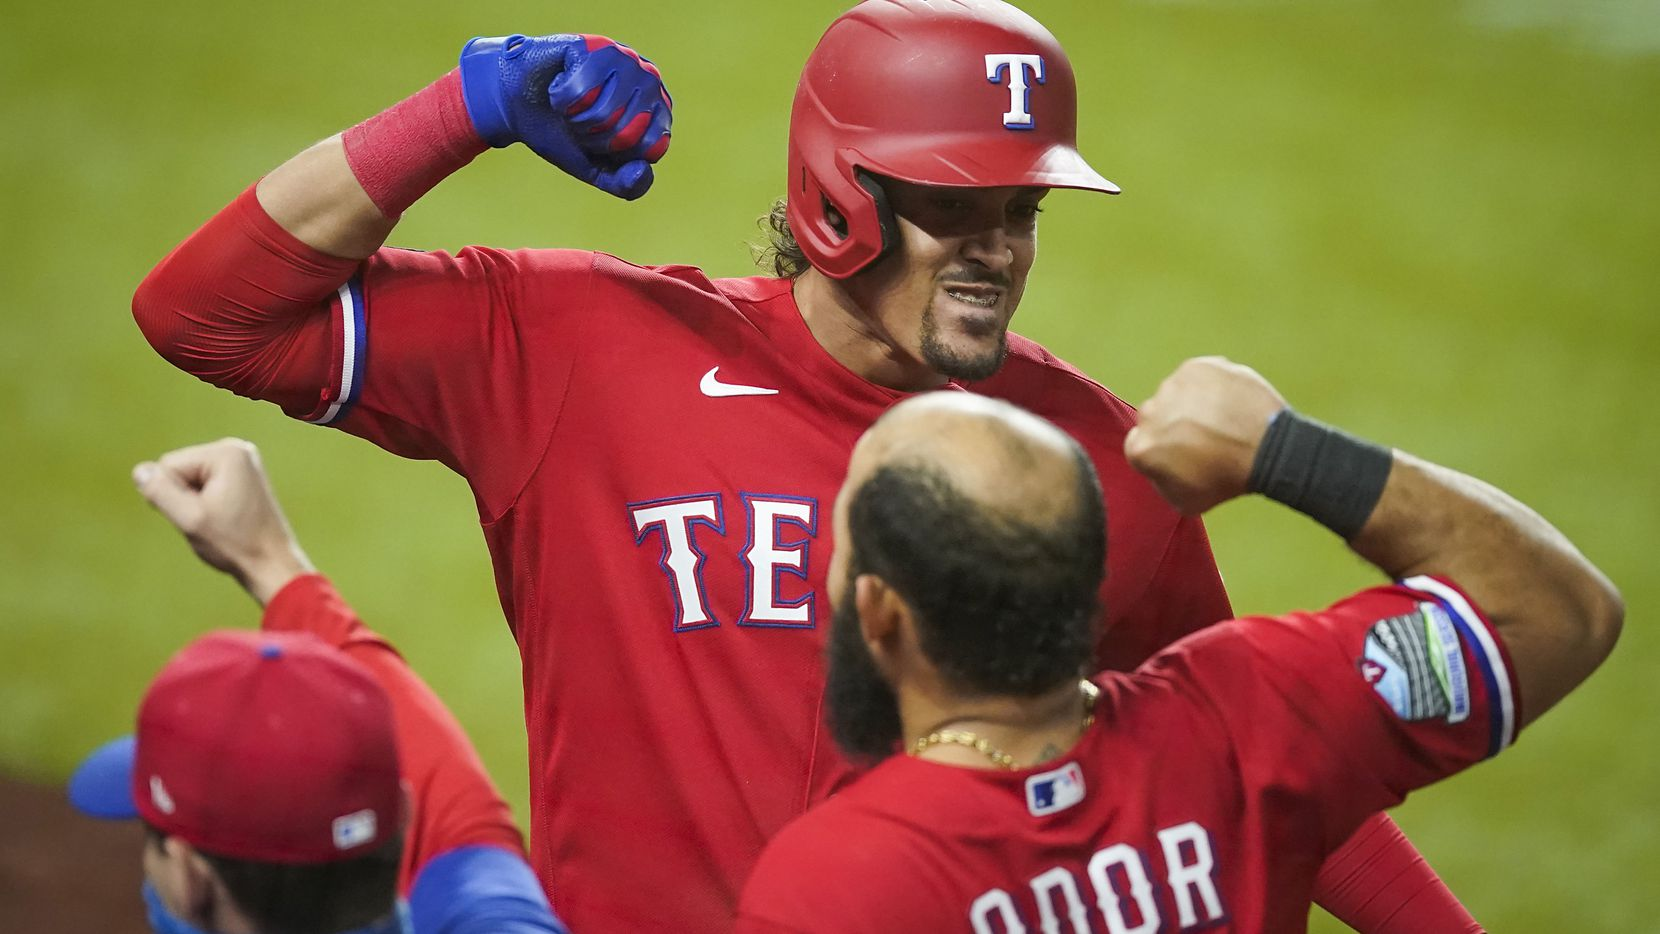 Texas Rangers first baseman Ronald Guzman celebrates with second baseman Rougned Odor after hitting a game tying solo home run during the ninth inning against the Houston Astros at Globe Life Field on Friday, Sept. 25, 2020.